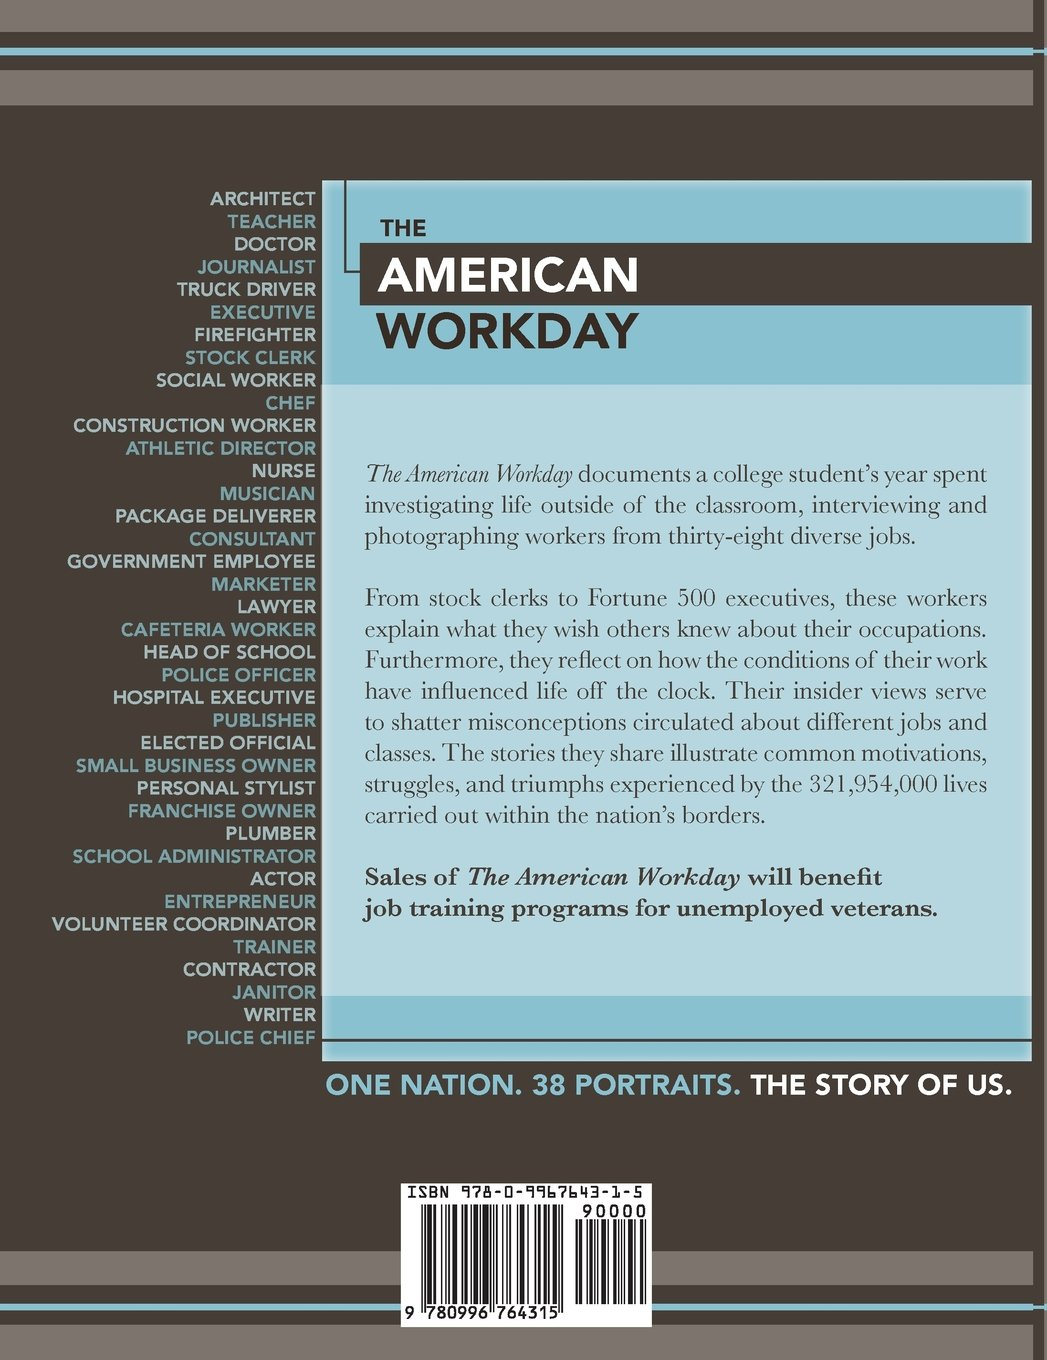 The American Workday: Tales of Life and Work in the United States